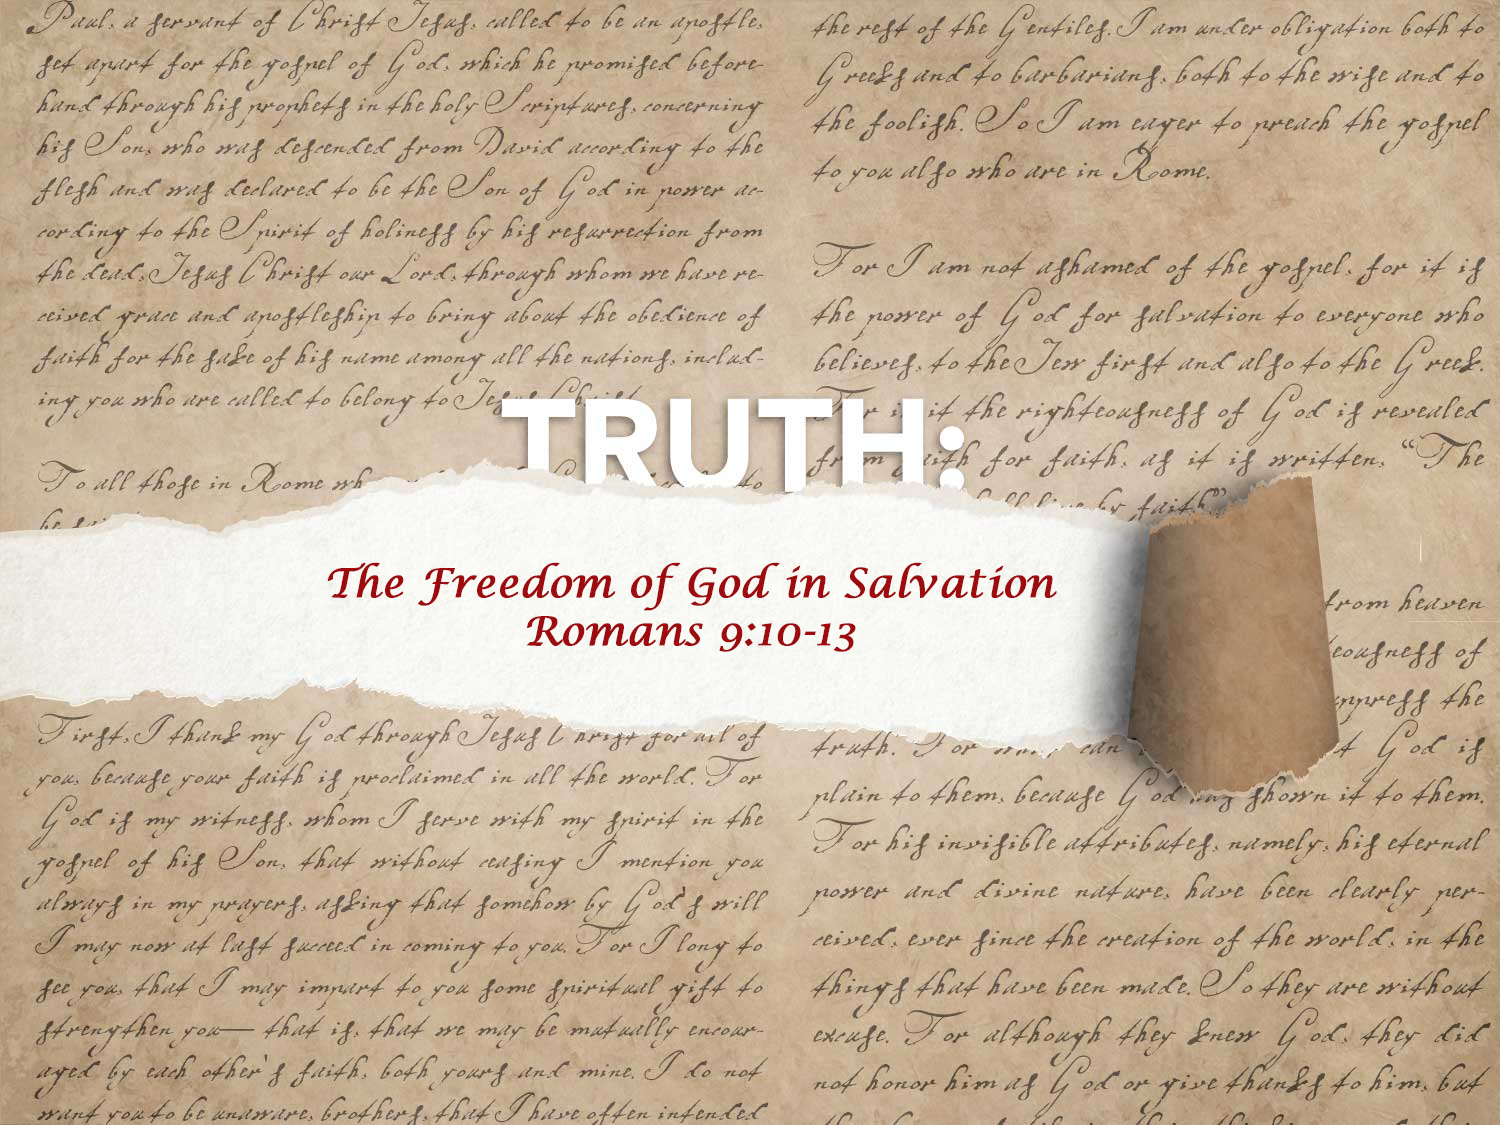 Romans 9:10-13 The Freedom of God in Salvation